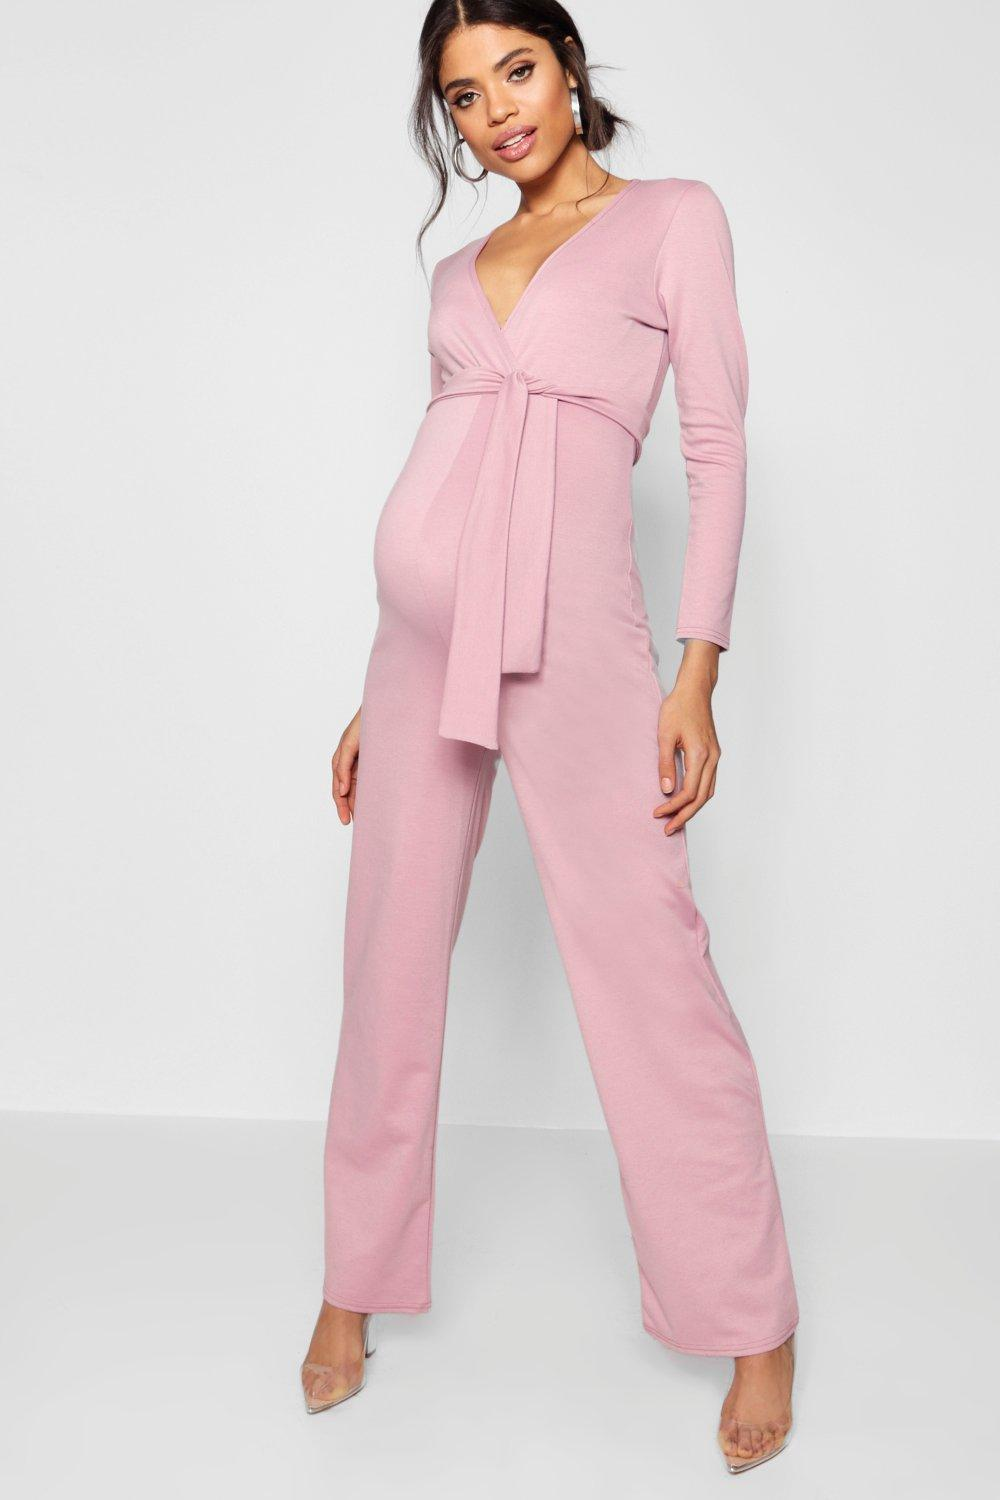 2a8c7aaf1089 Lyst - Boohoo Maternity Tie Front Plunge Jumpsuit in Pink